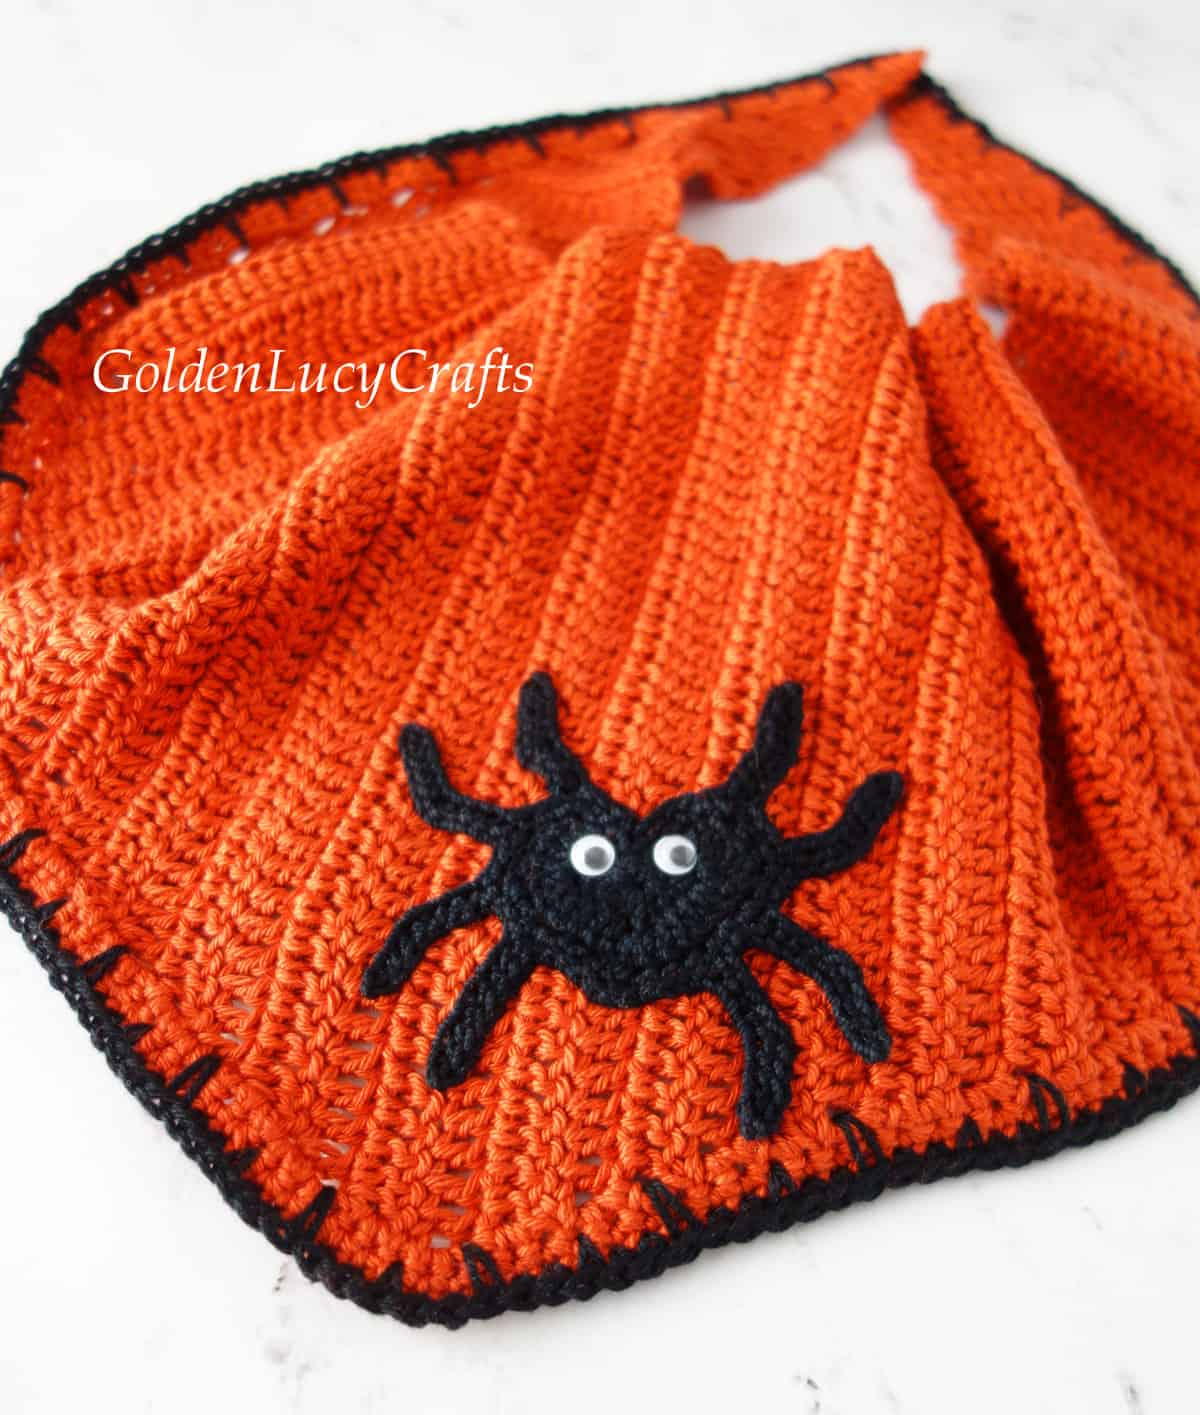 Crocheted Halloween dog bandana close up image.